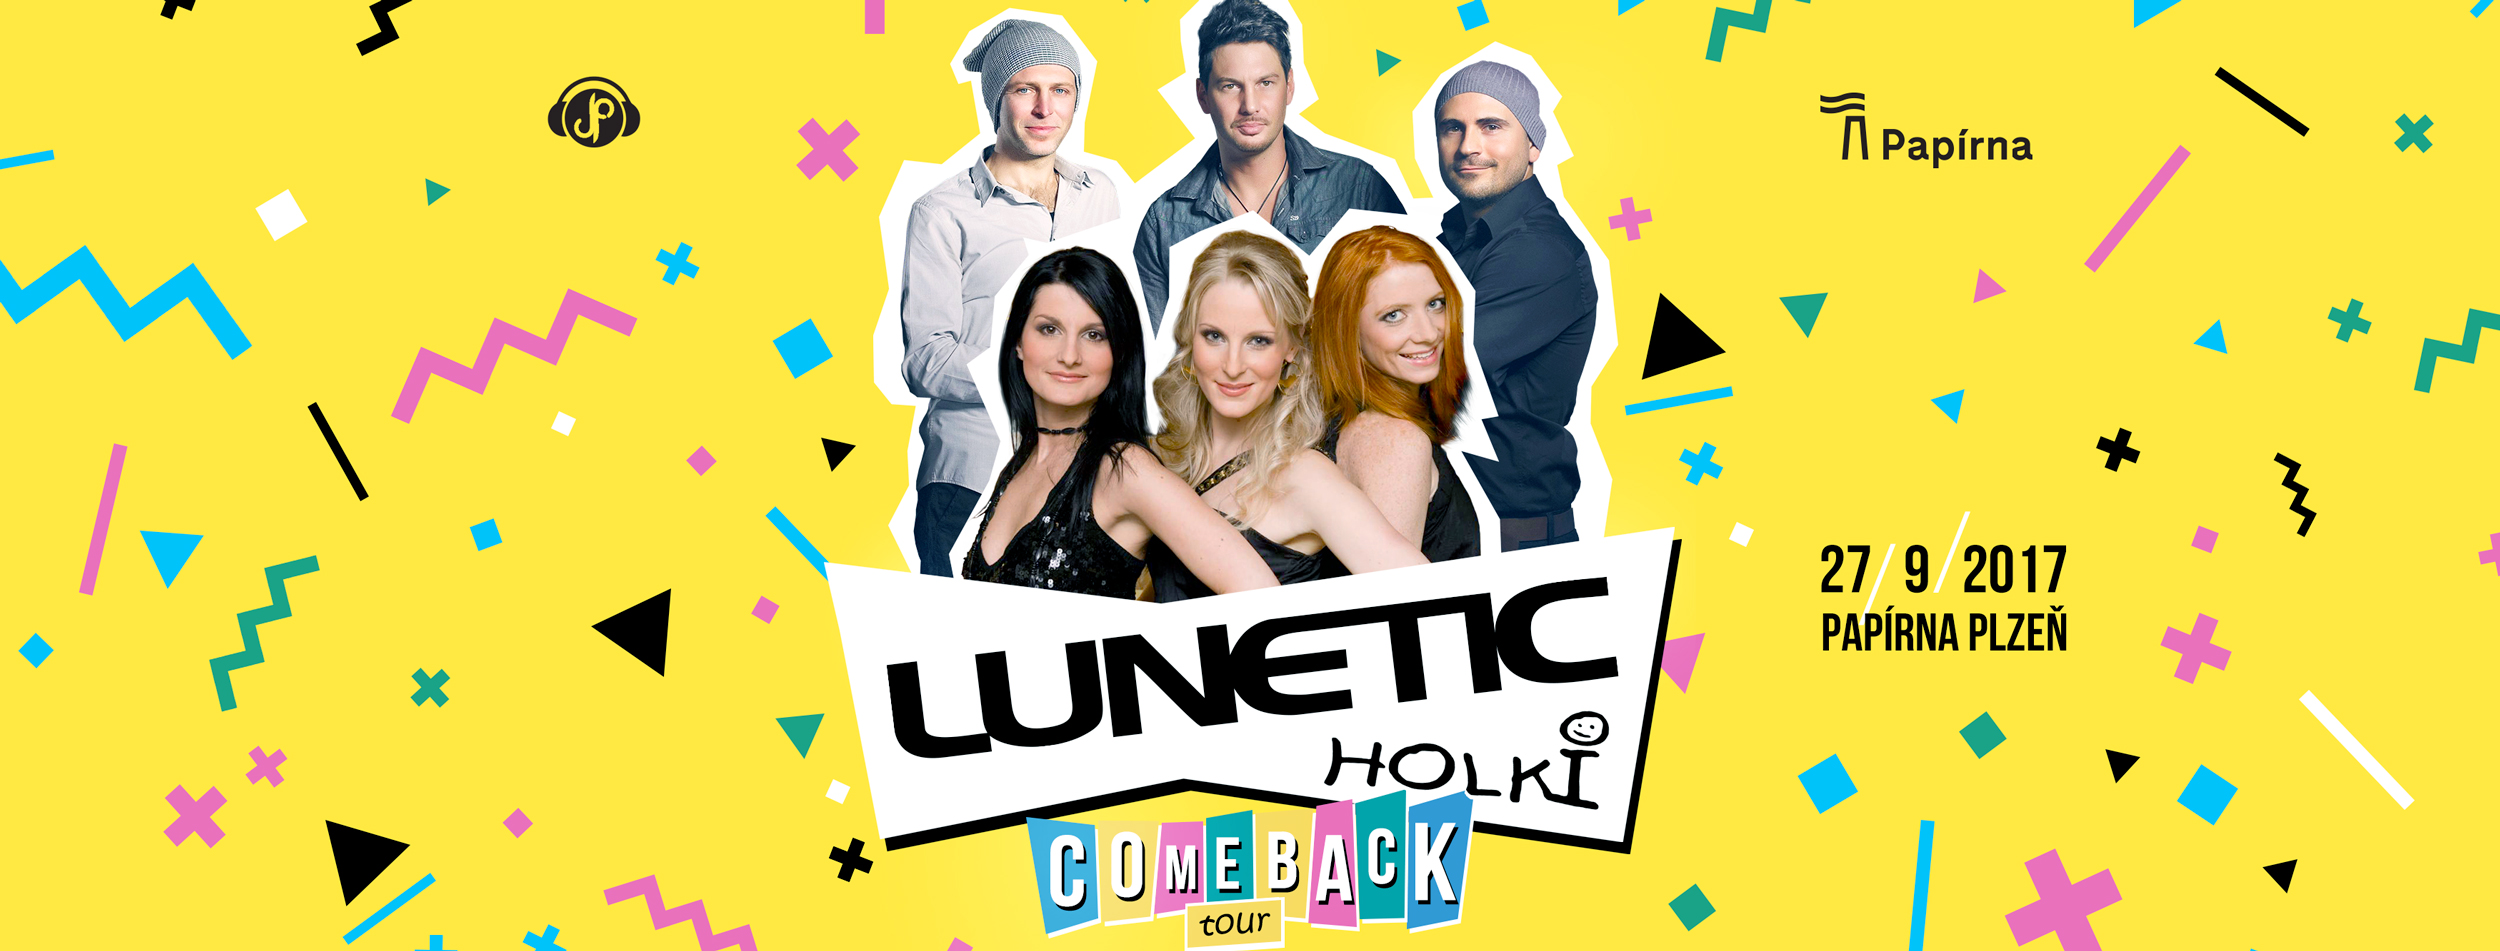 Lunetic & Holki Comeback tour